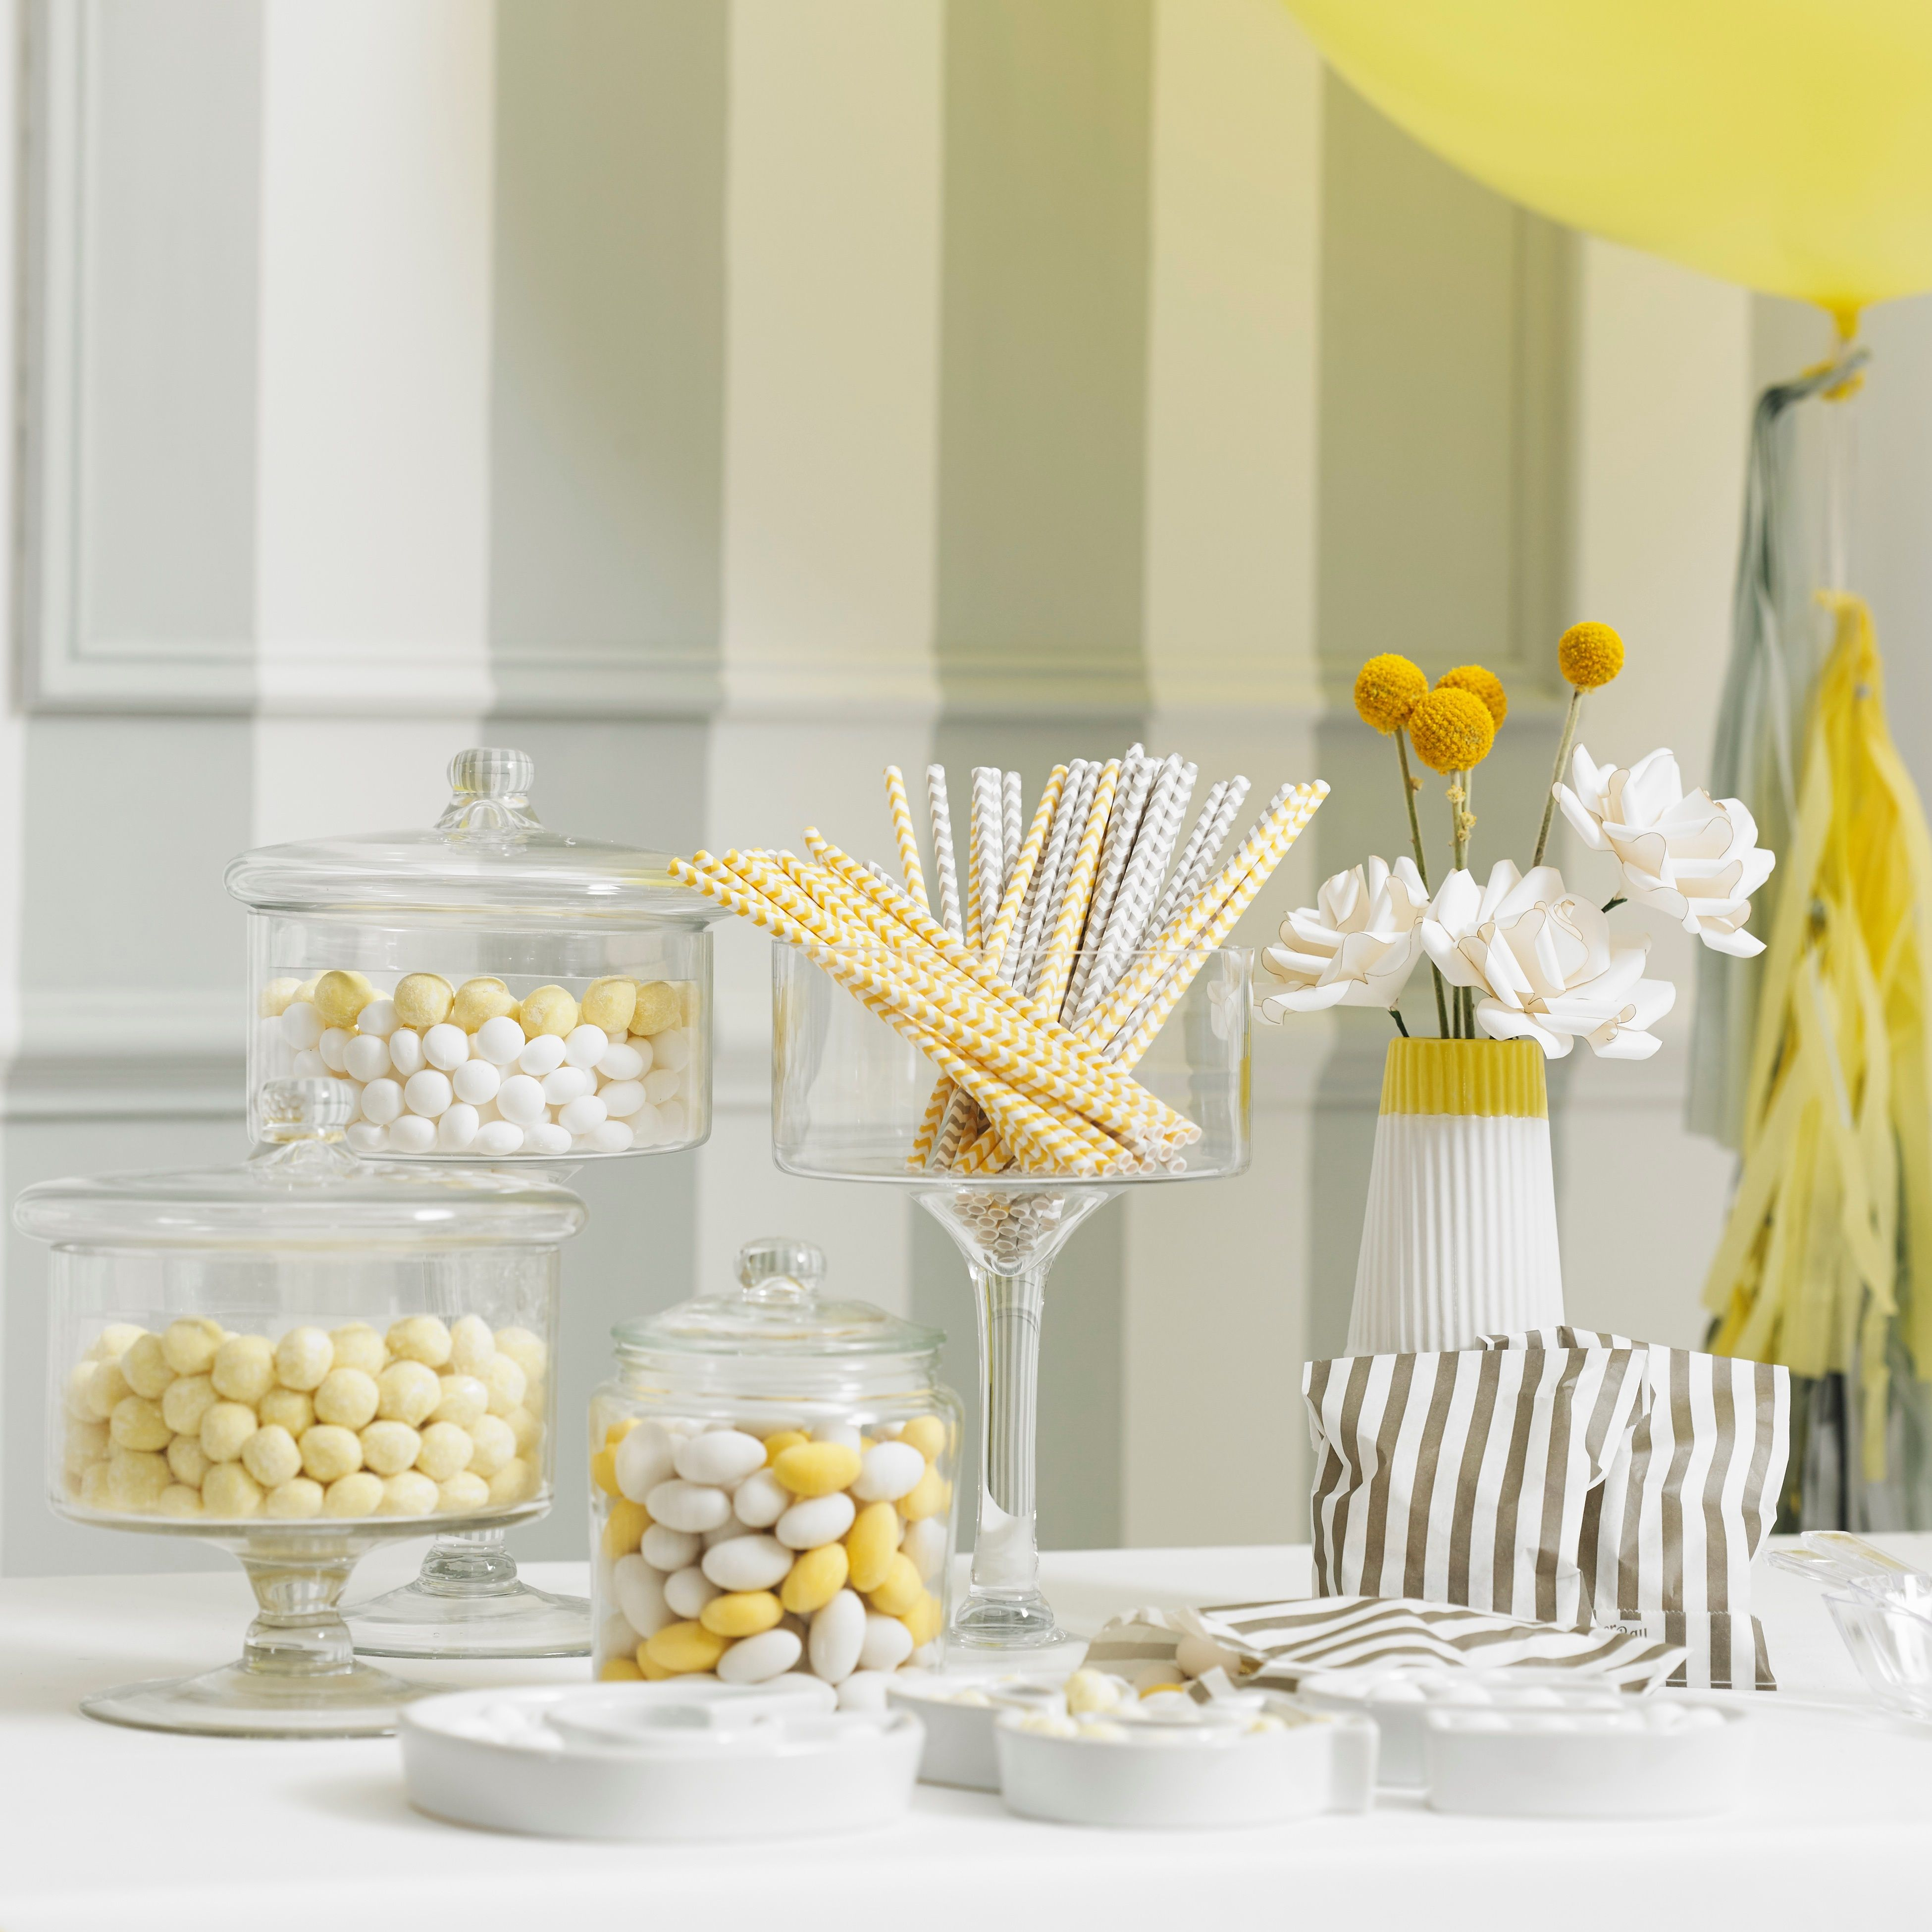 Spring Vintage Wedding Ideas: Wedding Styling: Yellow & Grey. DIY Dessert Table With